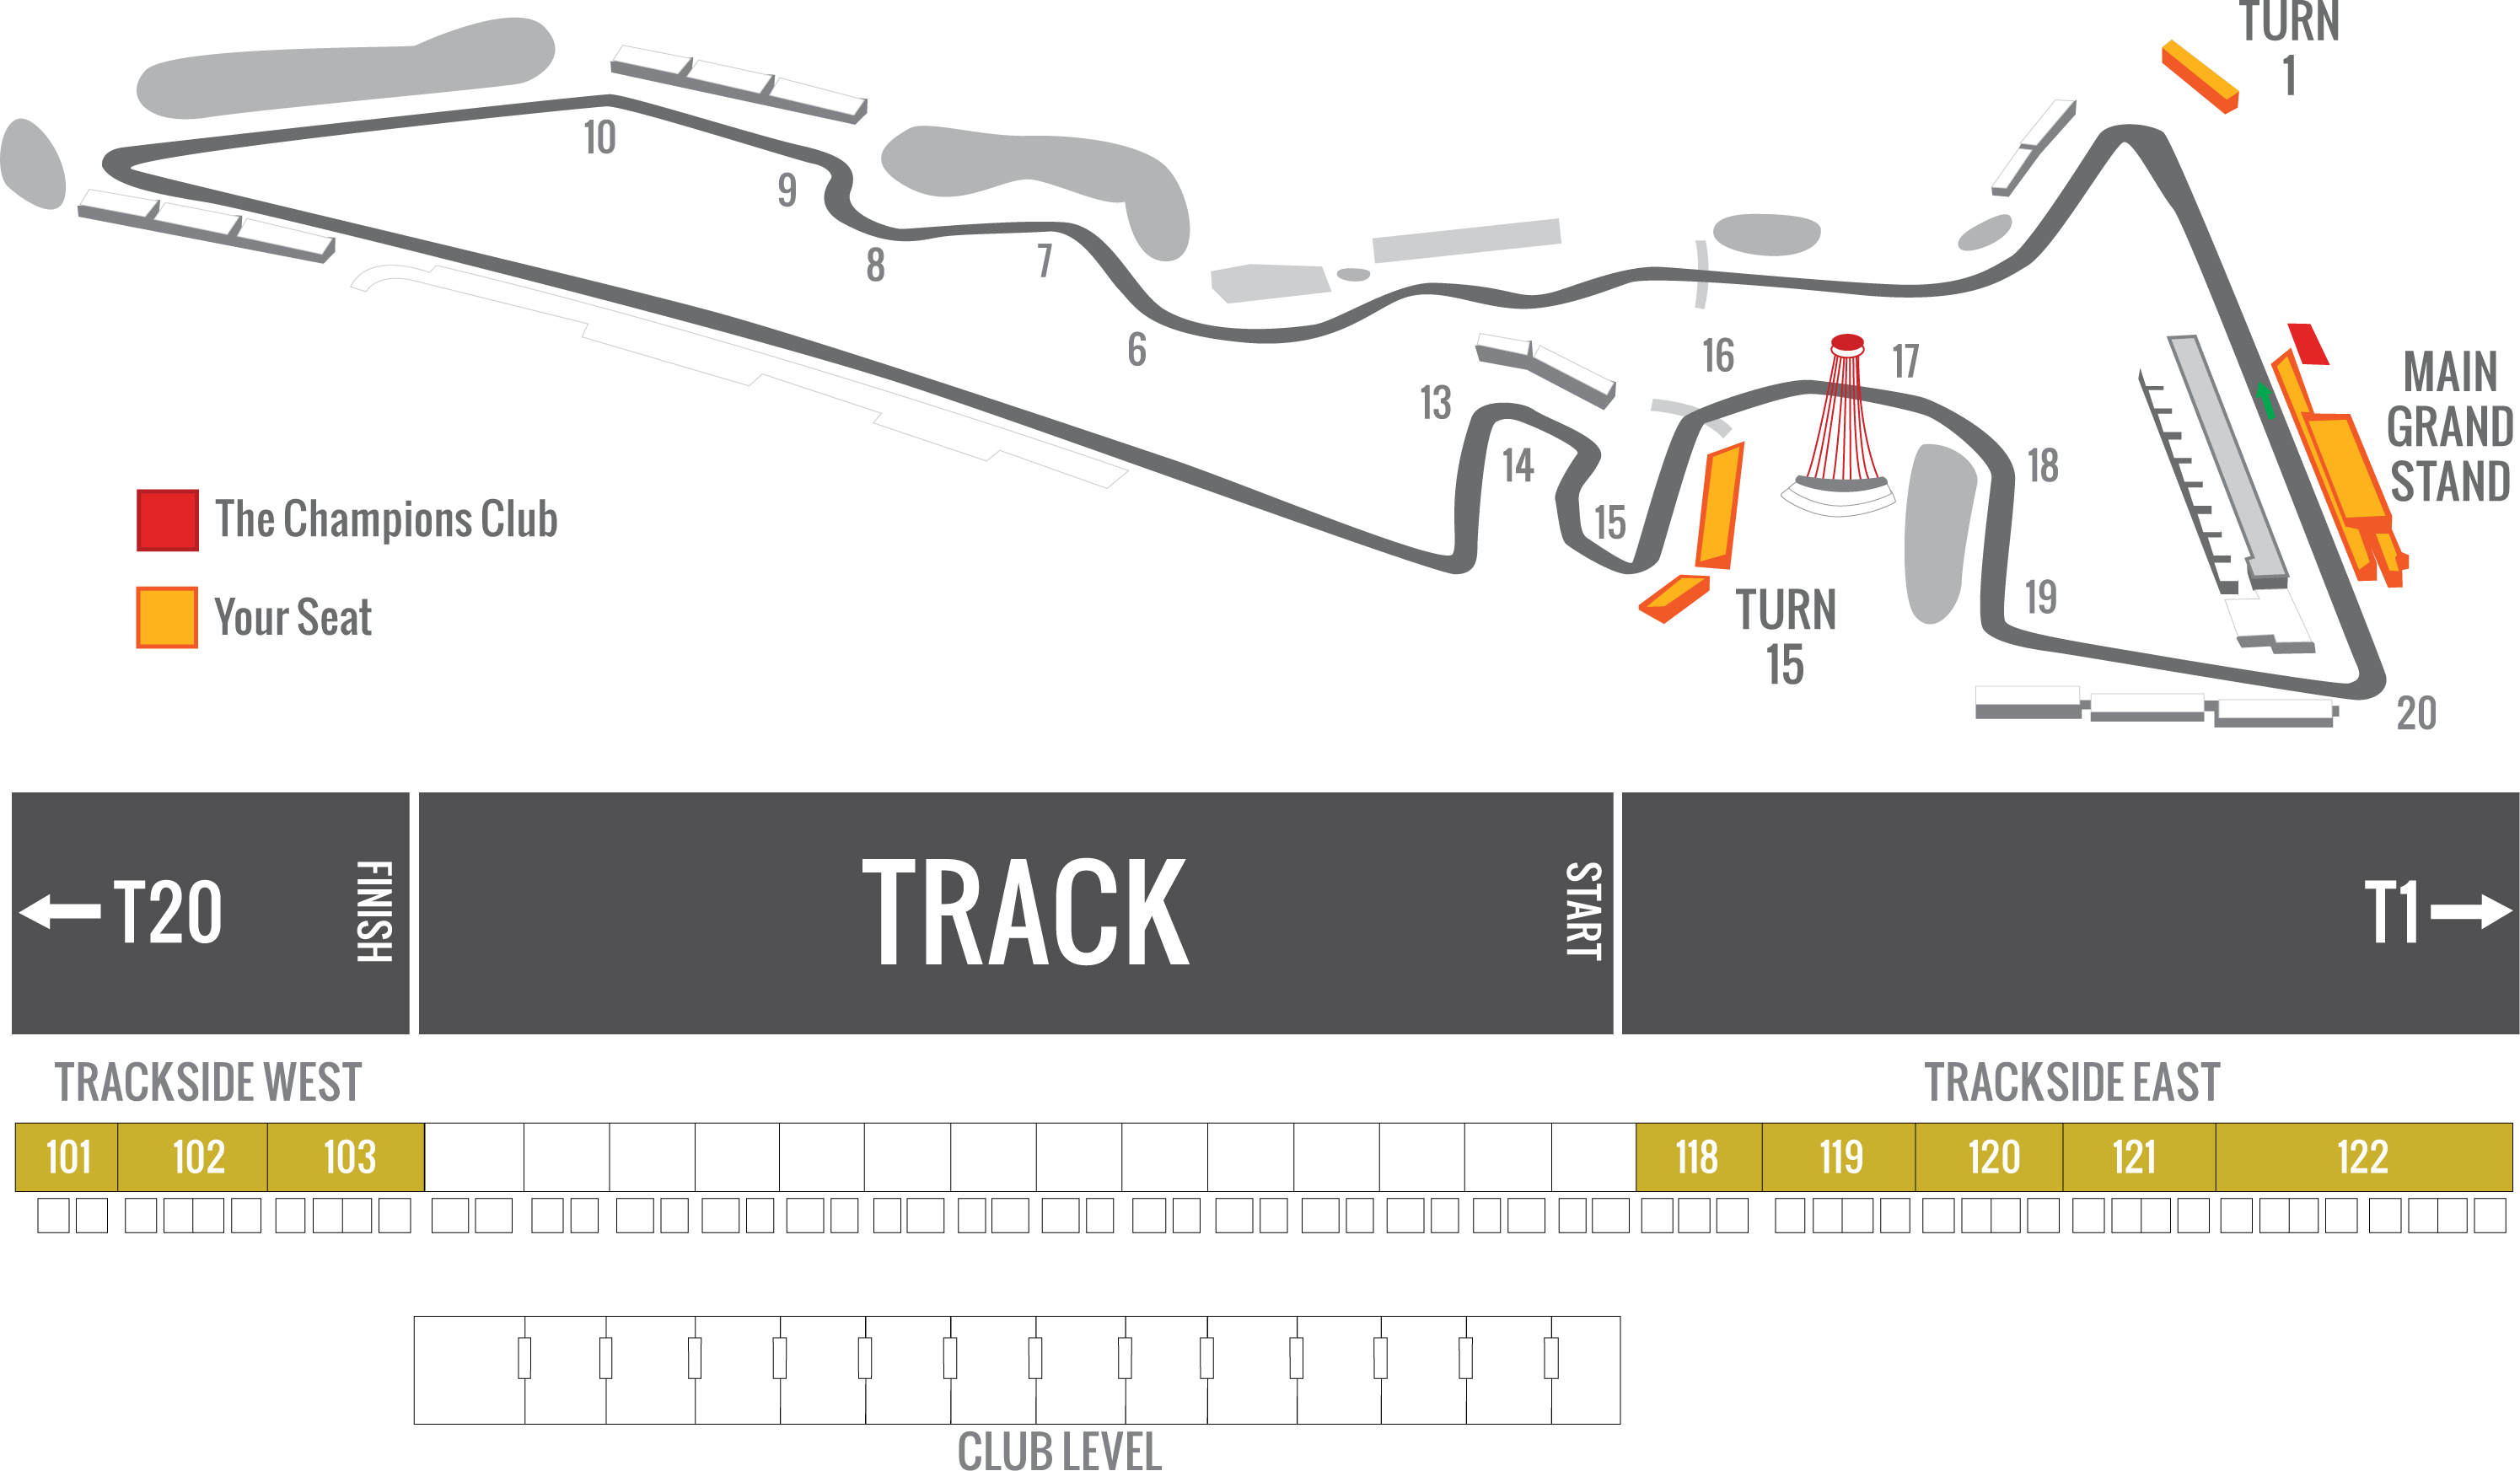 2018 F1 Usgp Tickets Multi Turn Official Ticket Package